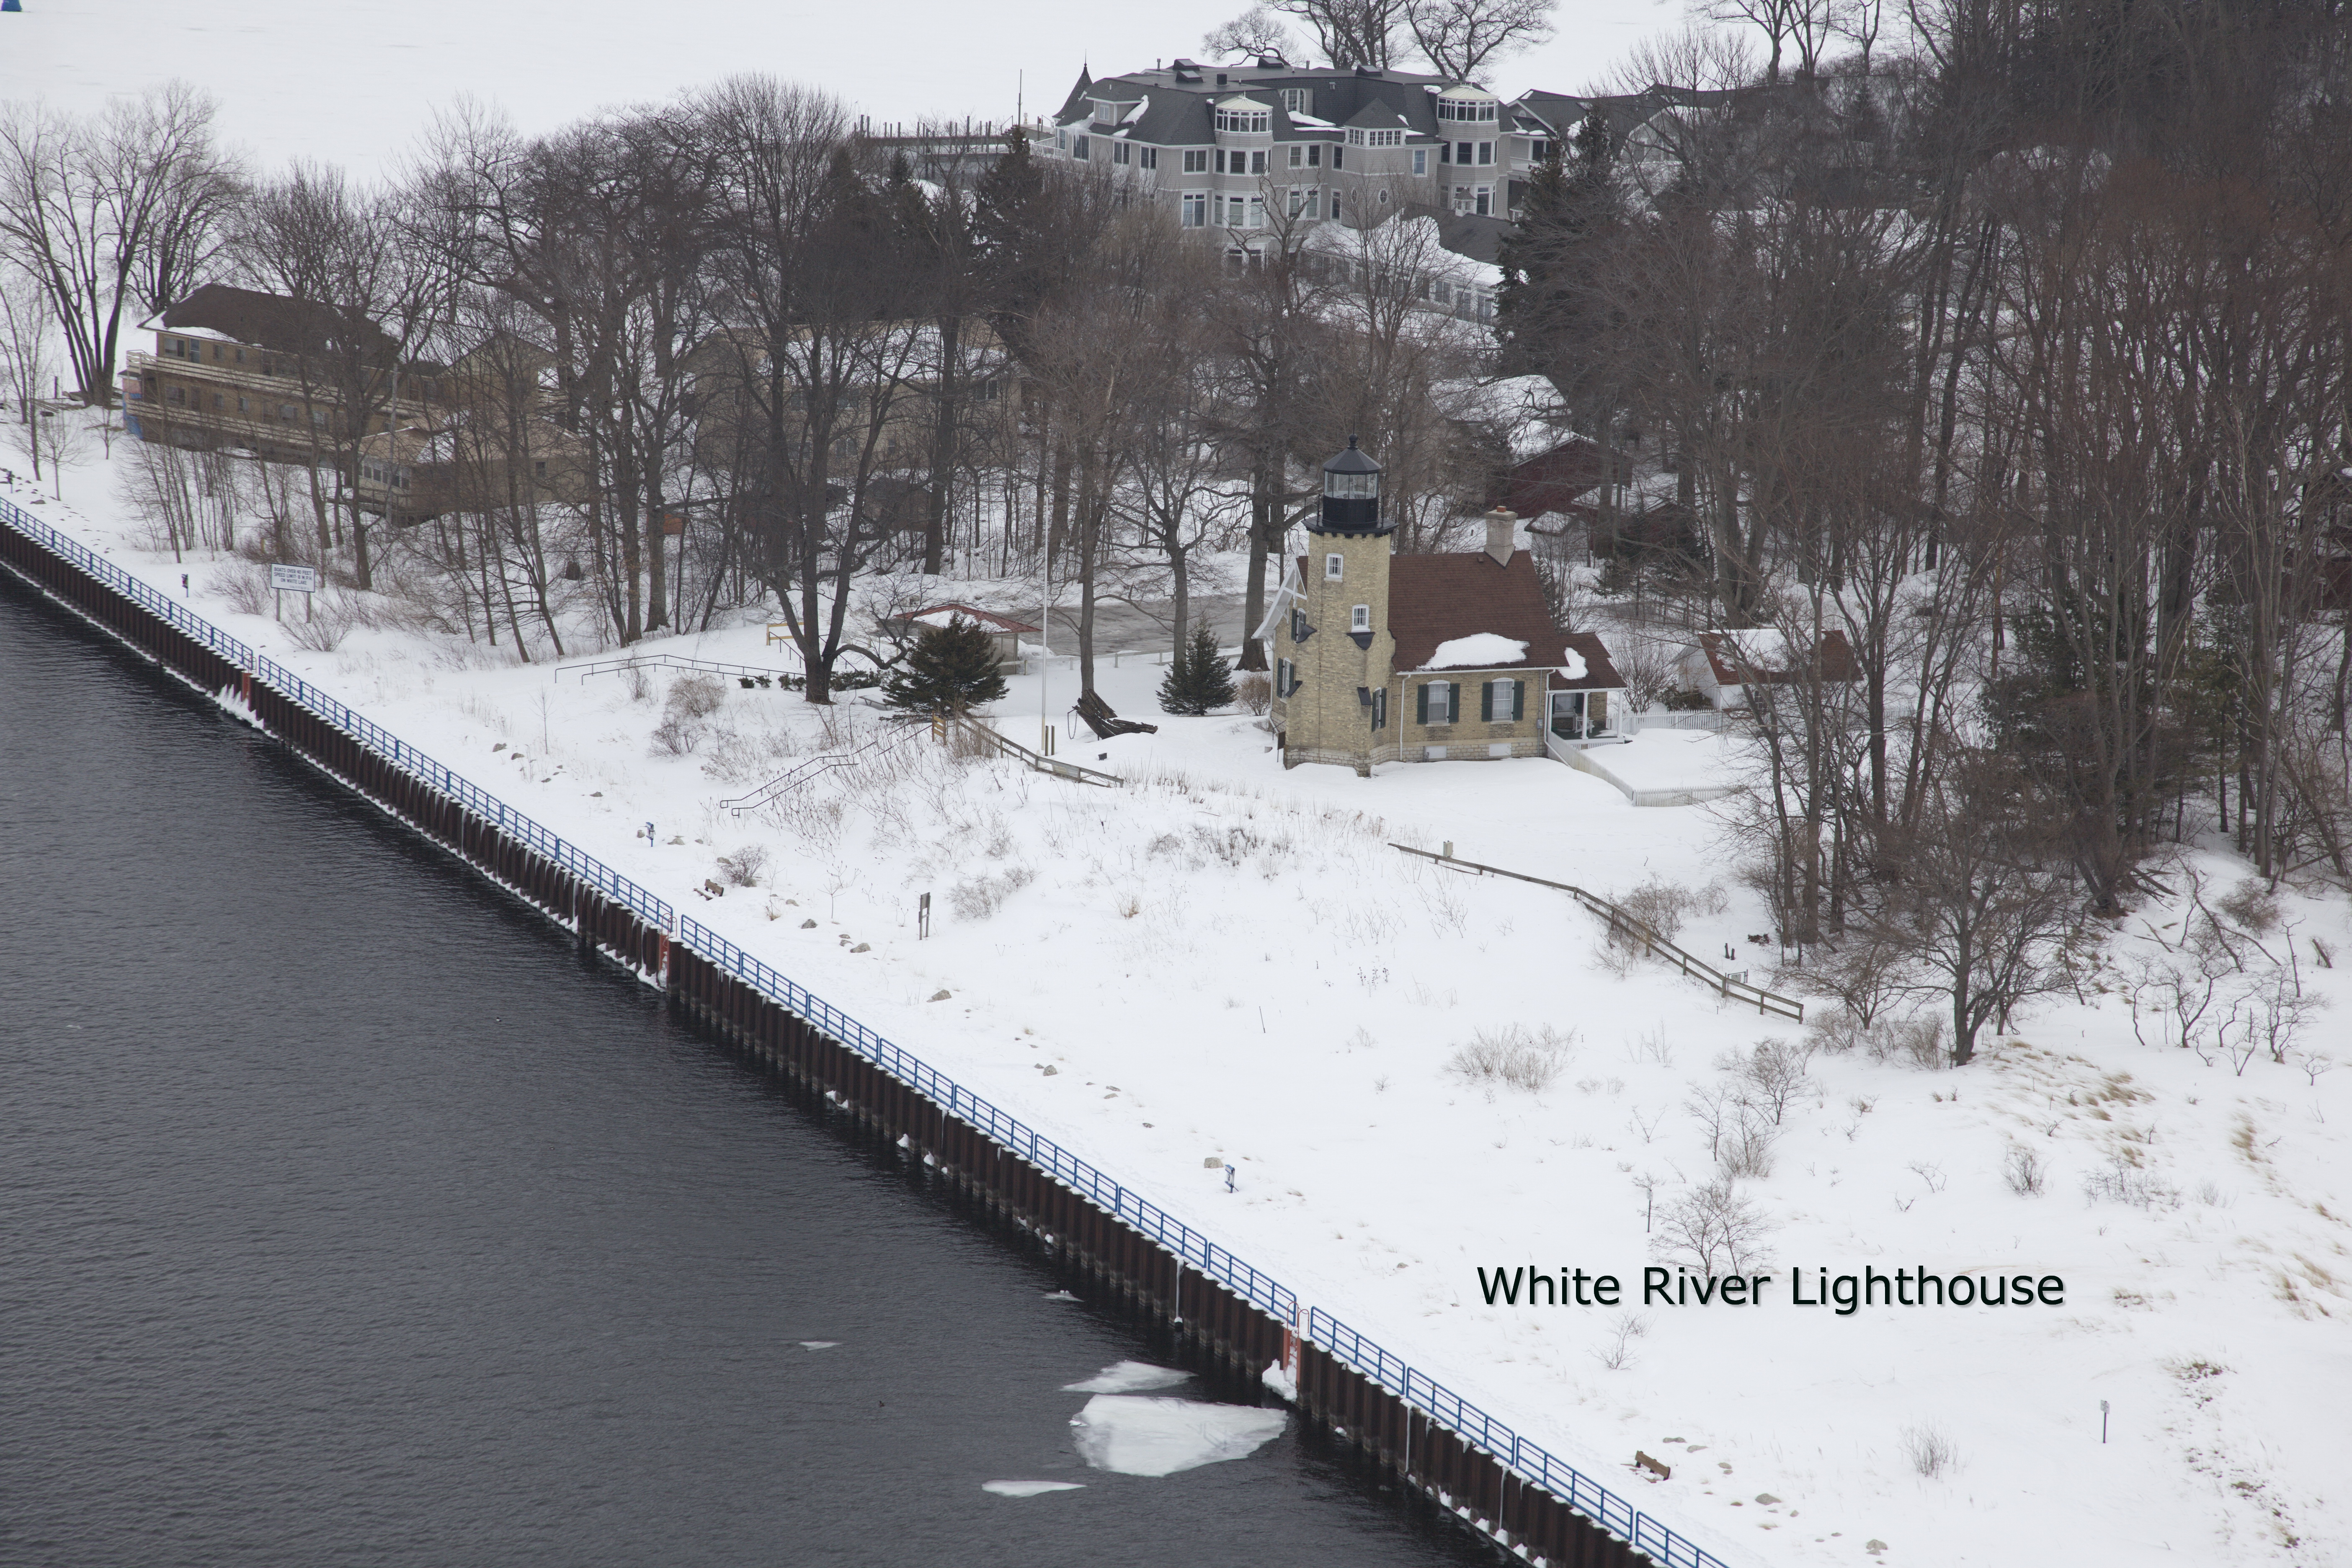 White River Lighthouse